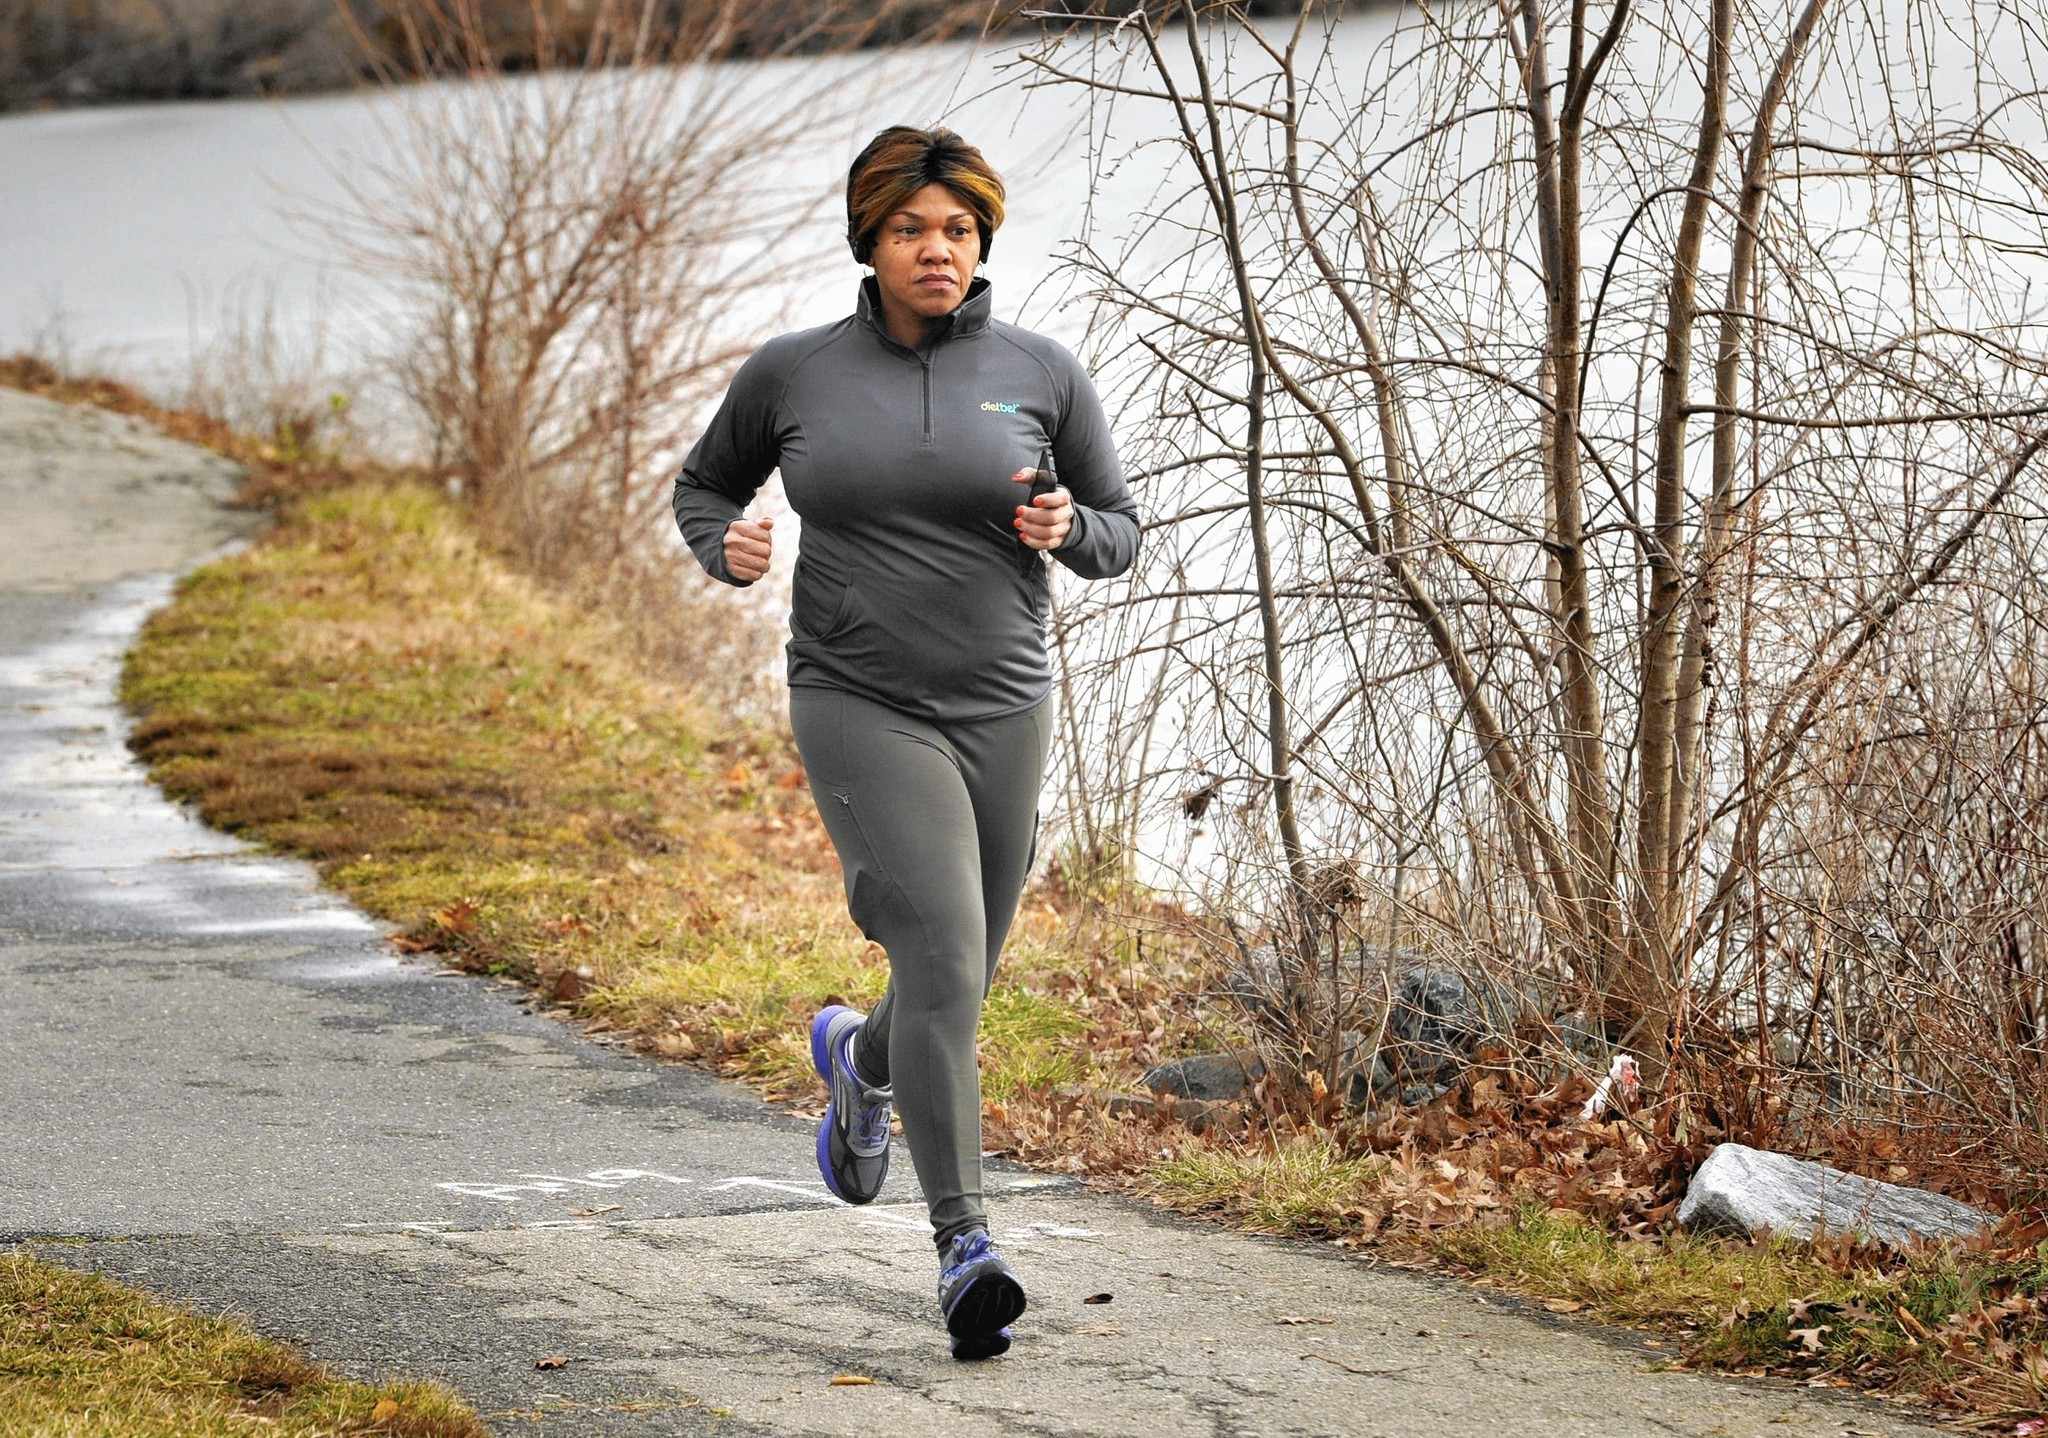 Betting on weight loss can help people meet goals ...